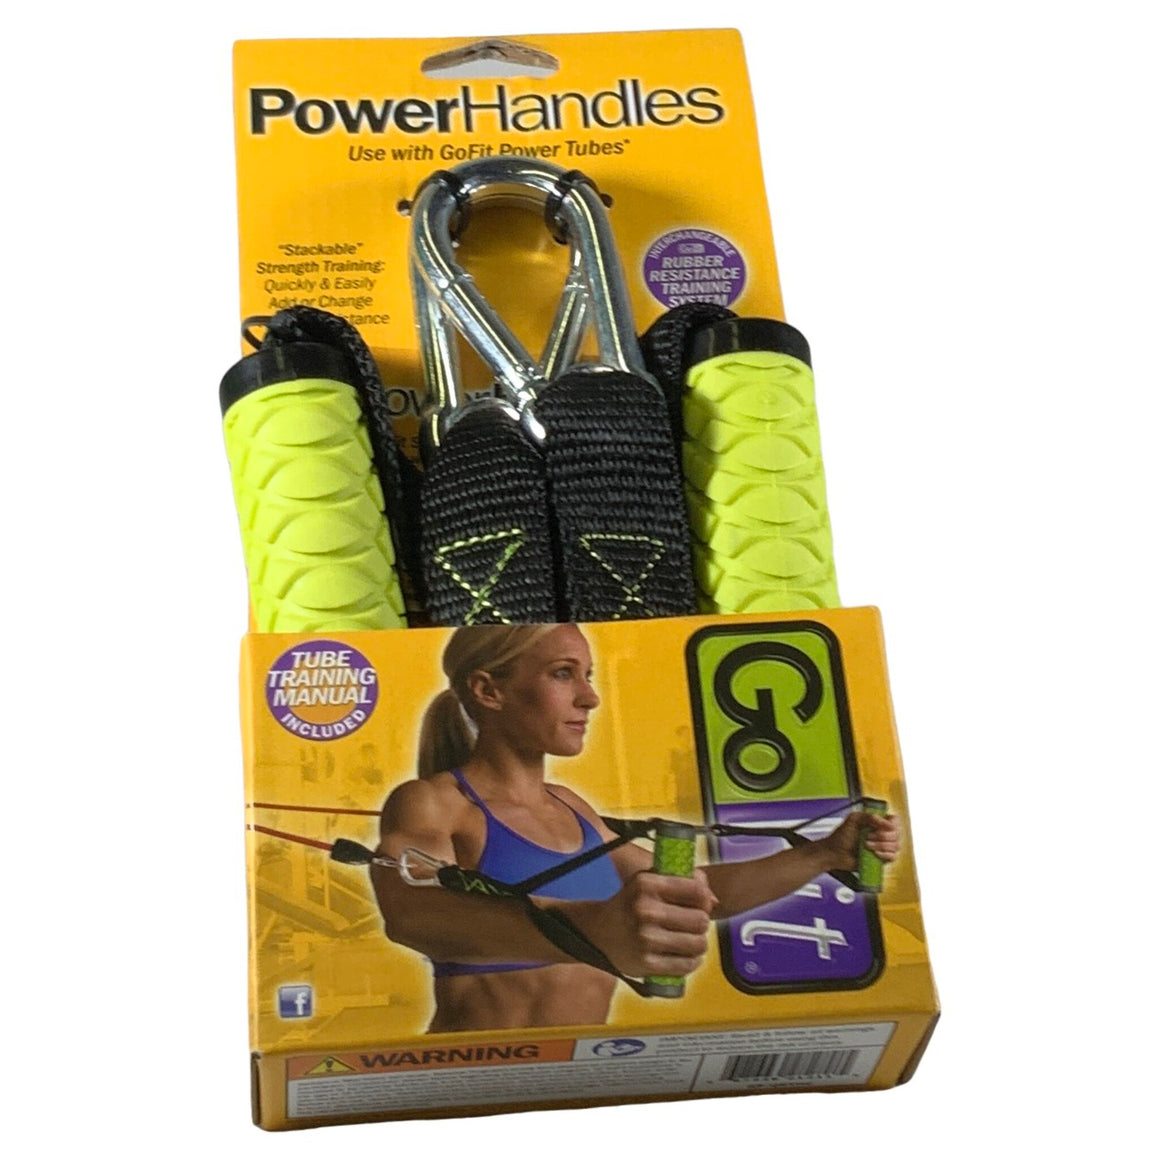 Power Handles - Go Fit